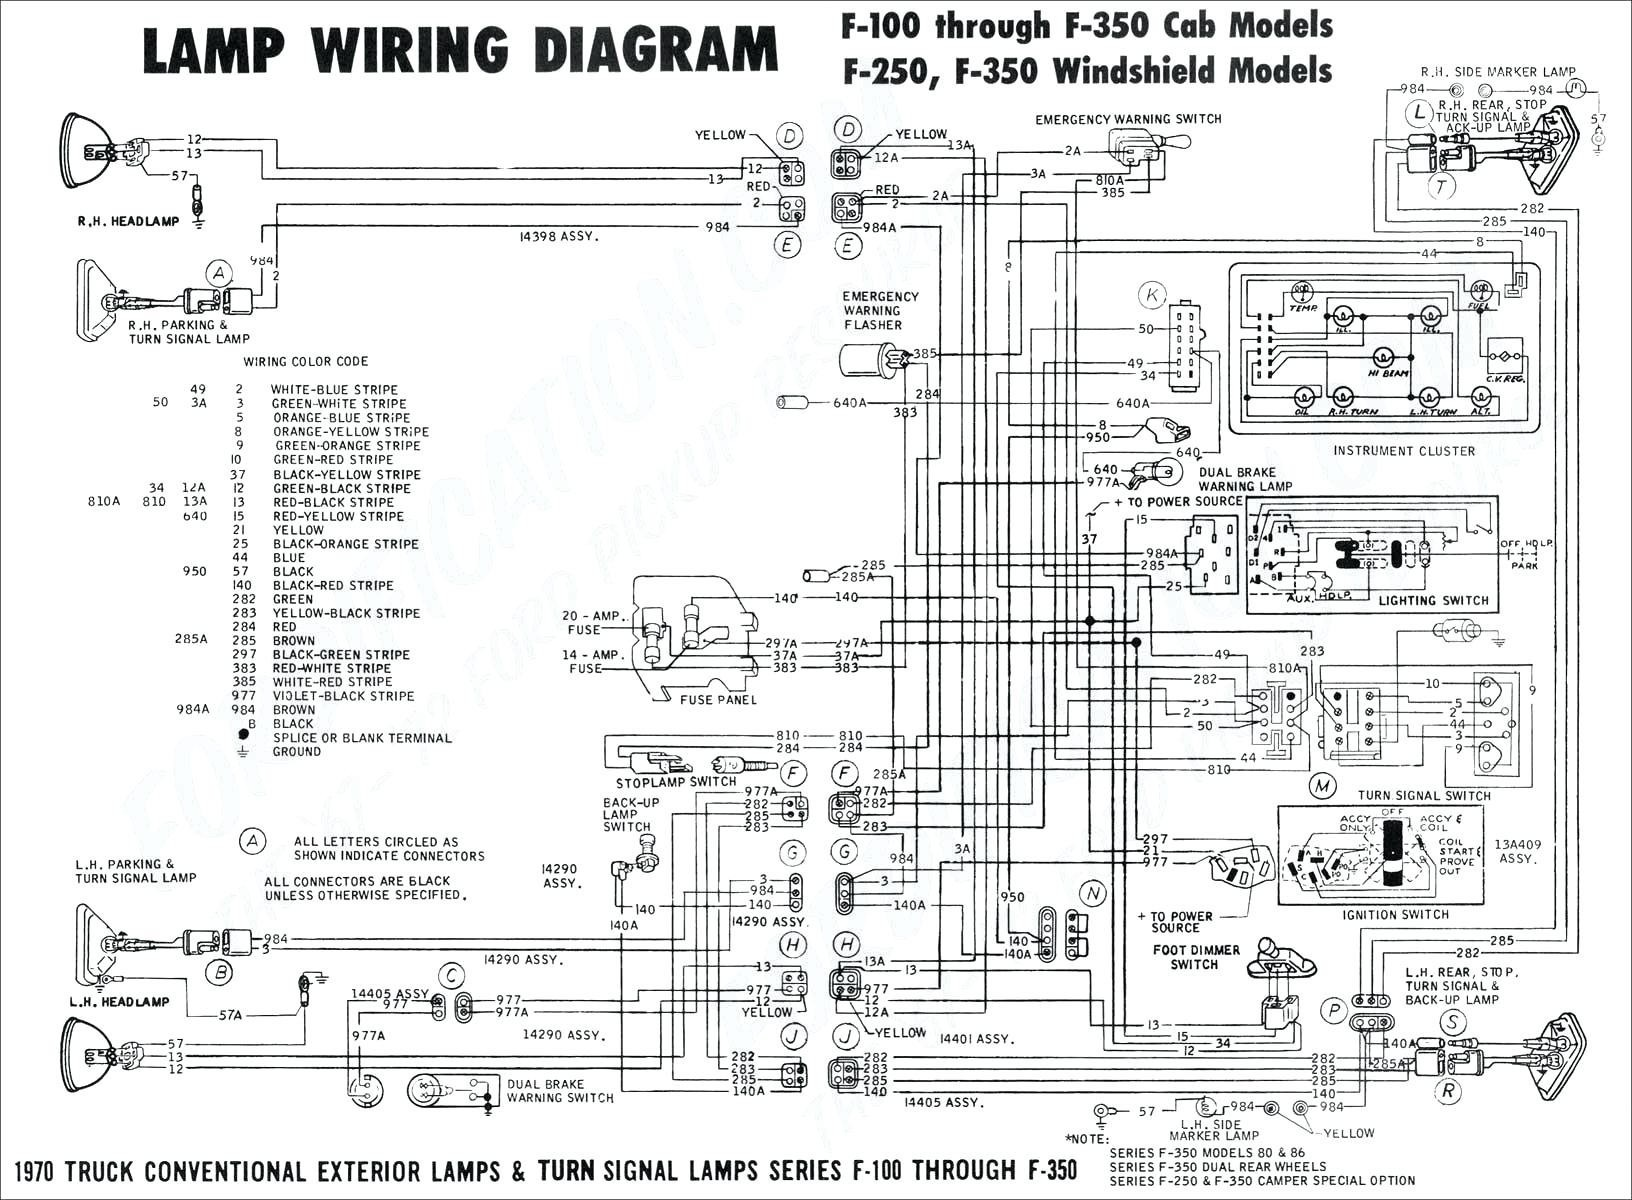 honda lawn mower parts diagram wiring diagram sears ss14